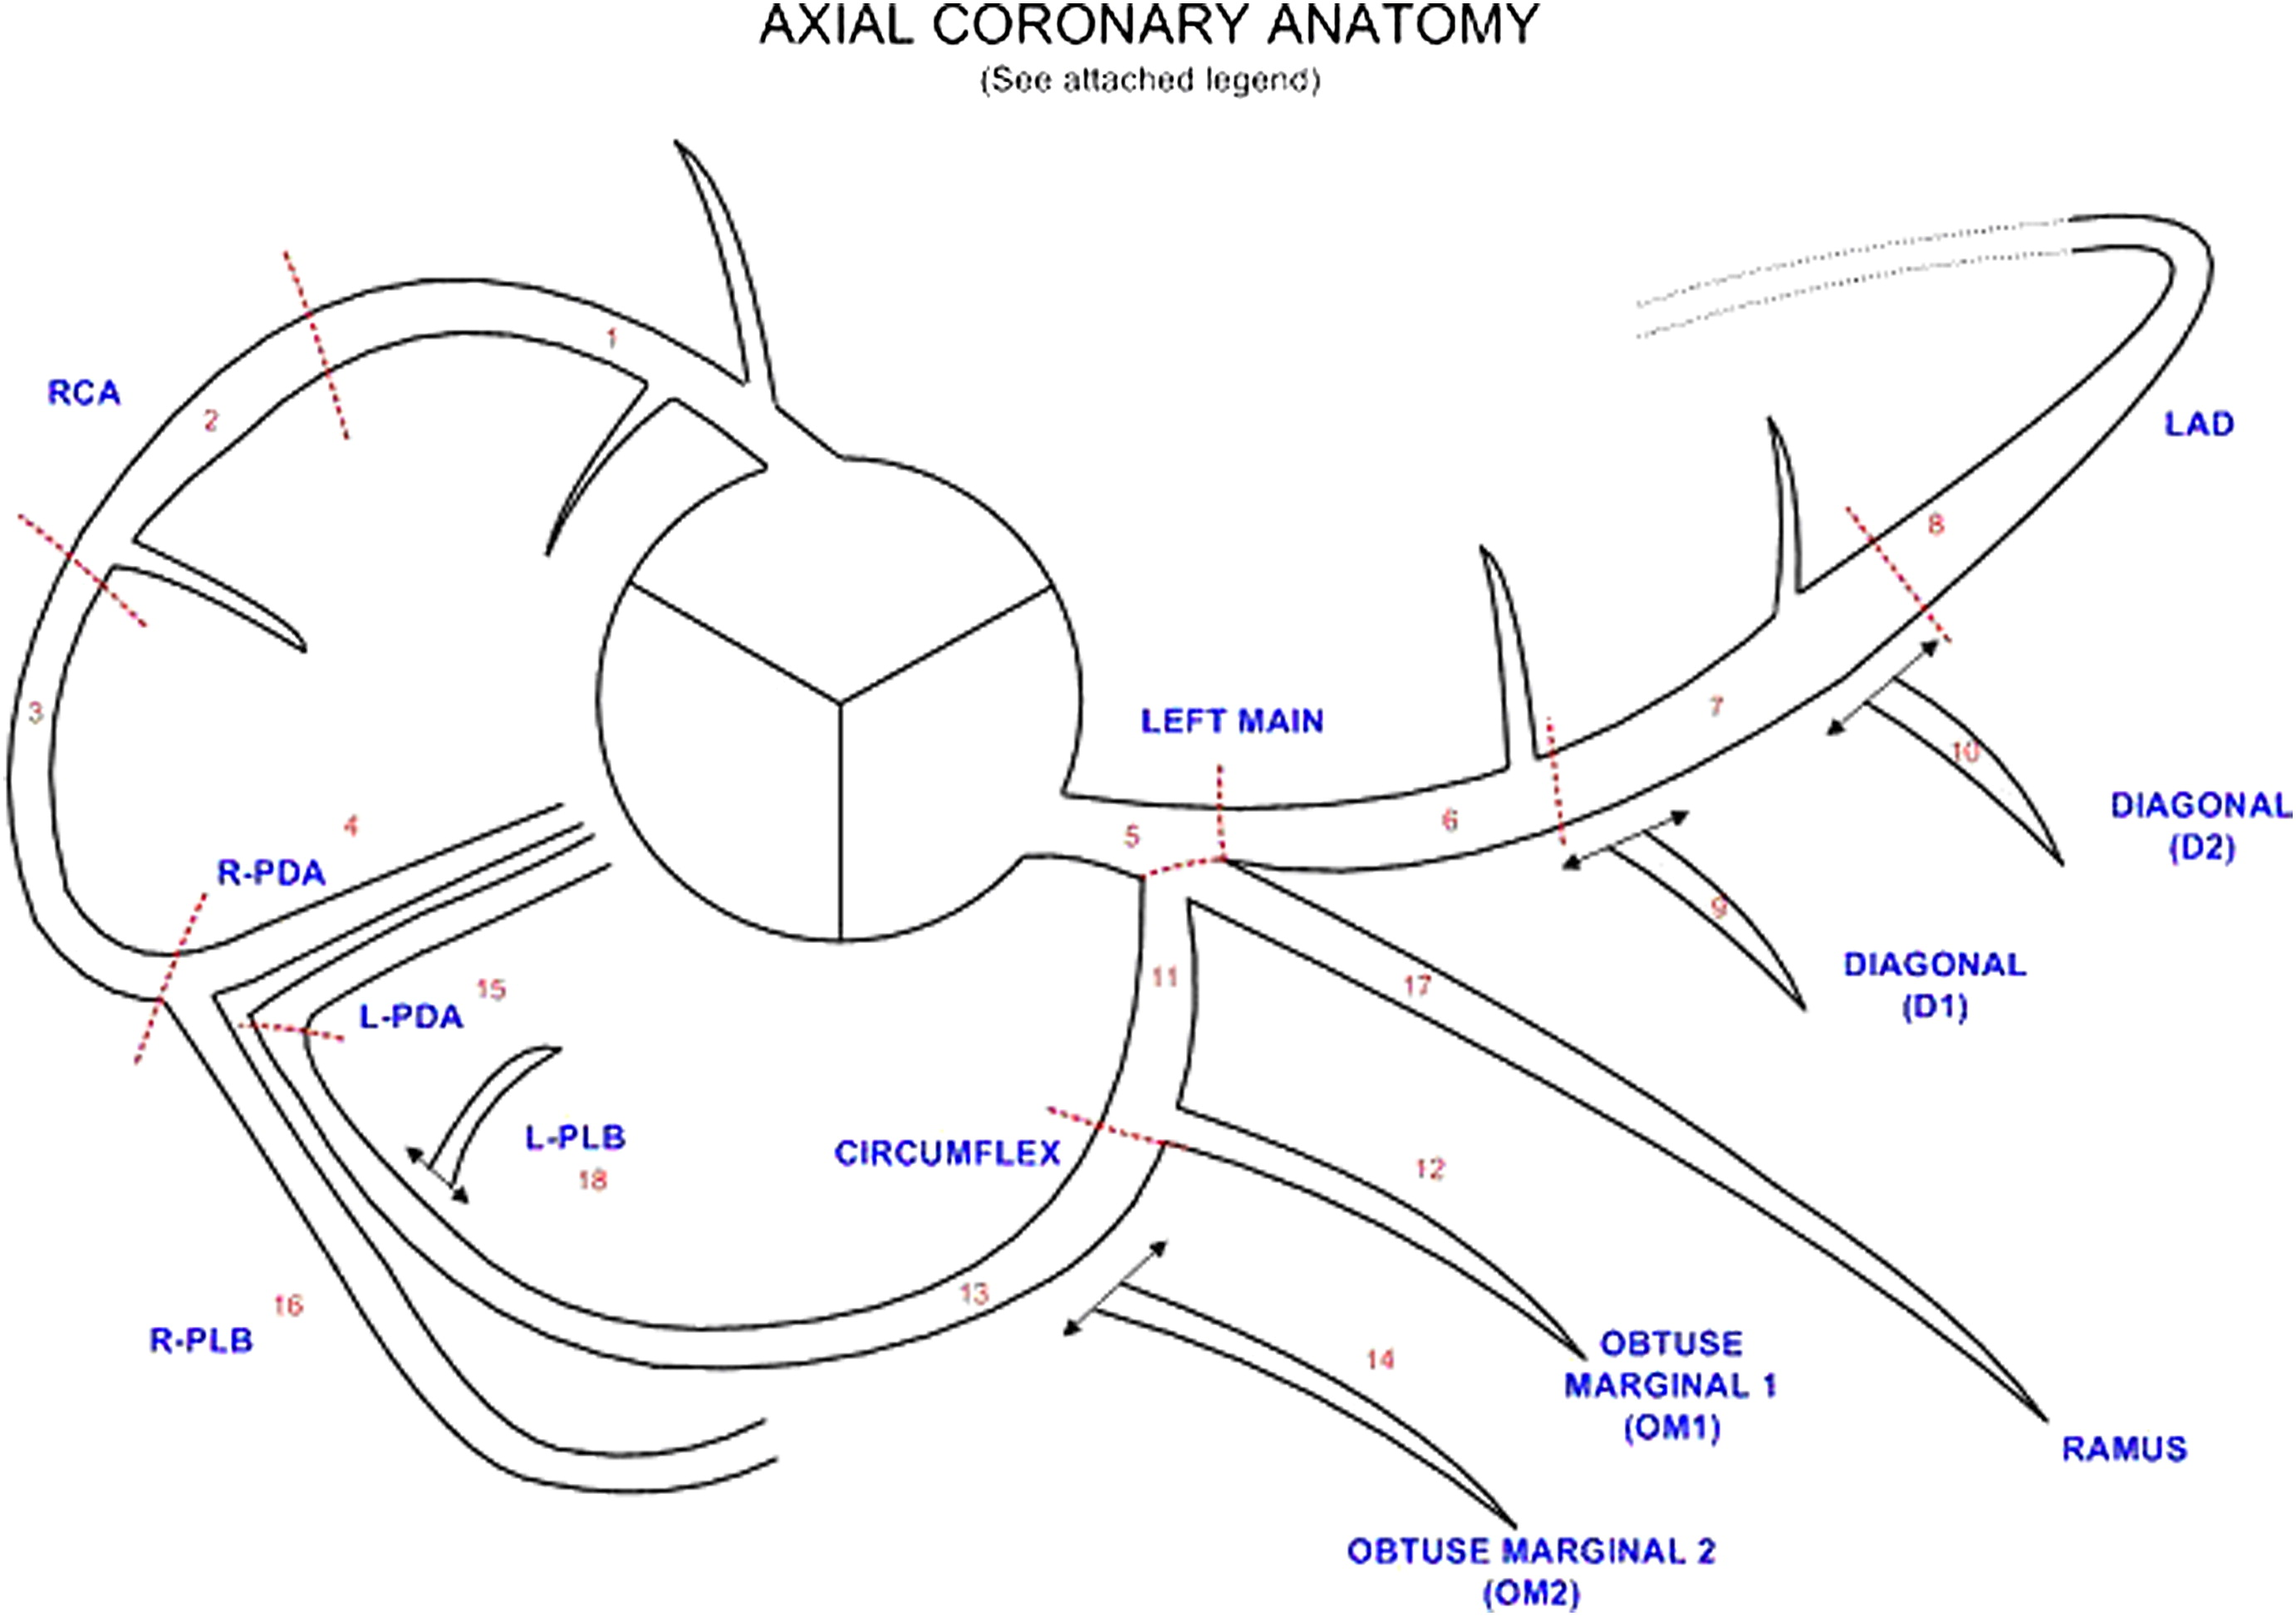 coronary arteries diagram branches 2002 pontiac radio wiring scct guidelines for the interpretation and reporting of